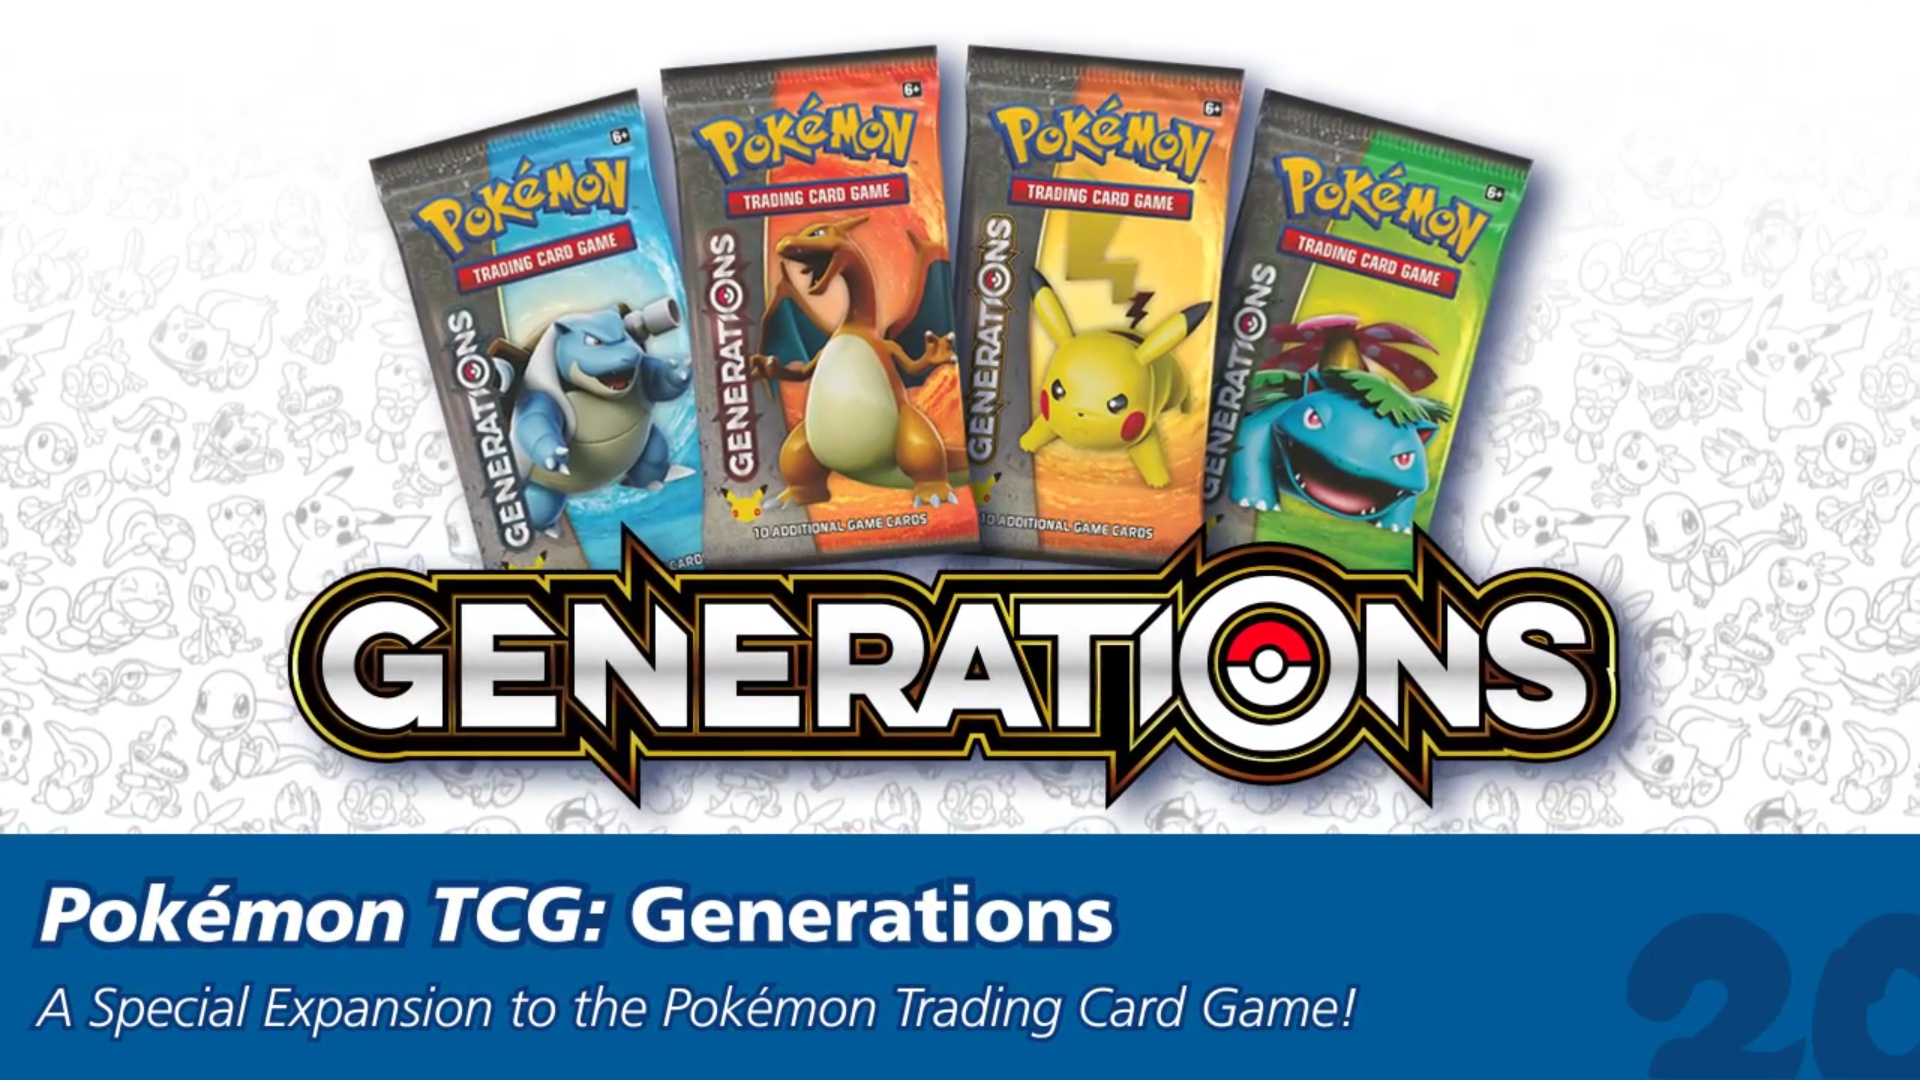 how to get pokemon generations packs